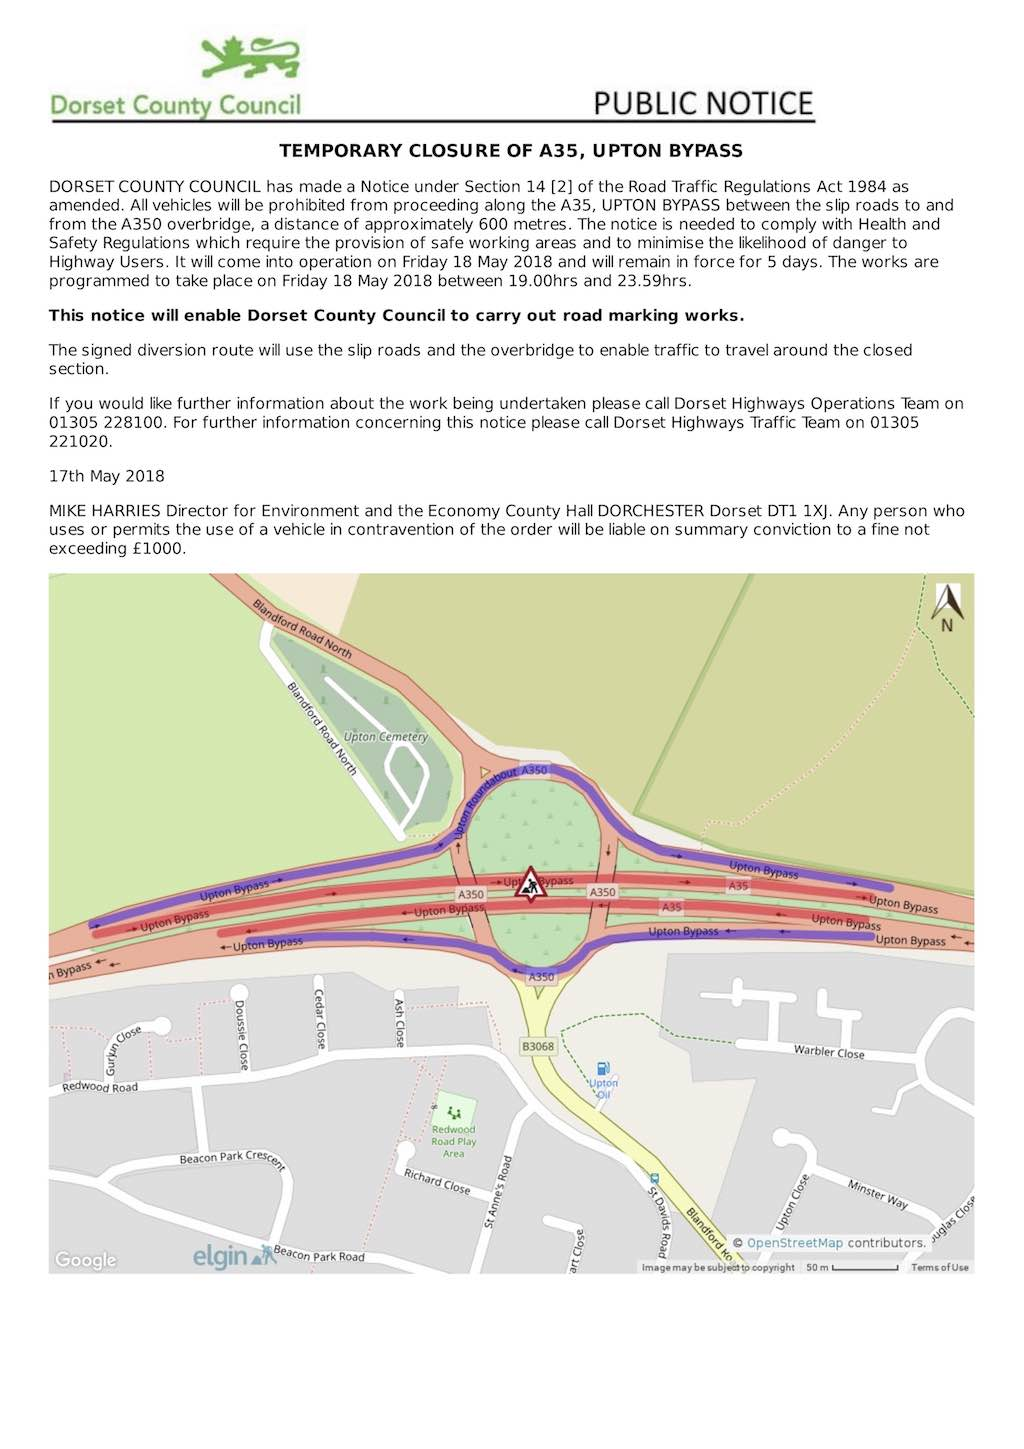 temp closure of A35 May 2018